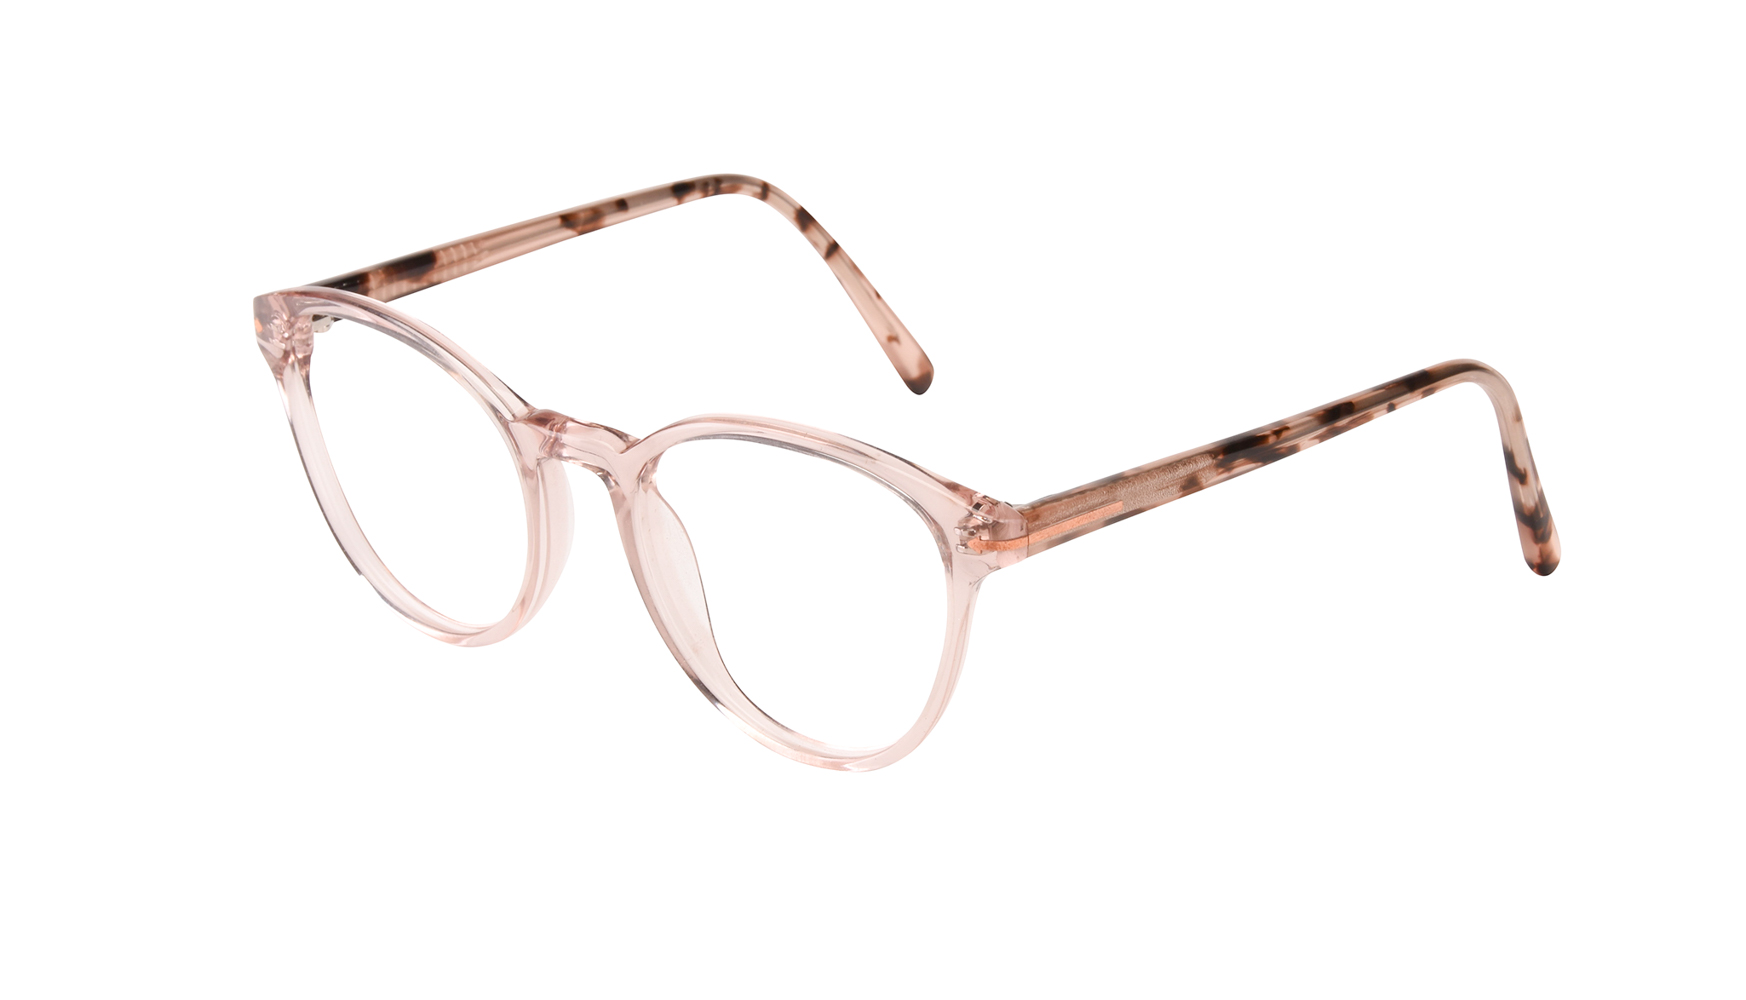 0e9cfc0572a9 Affordable fashion glasses round eyeglasses women london blush tilt jpg  1600x707 Mlg glasses tilted